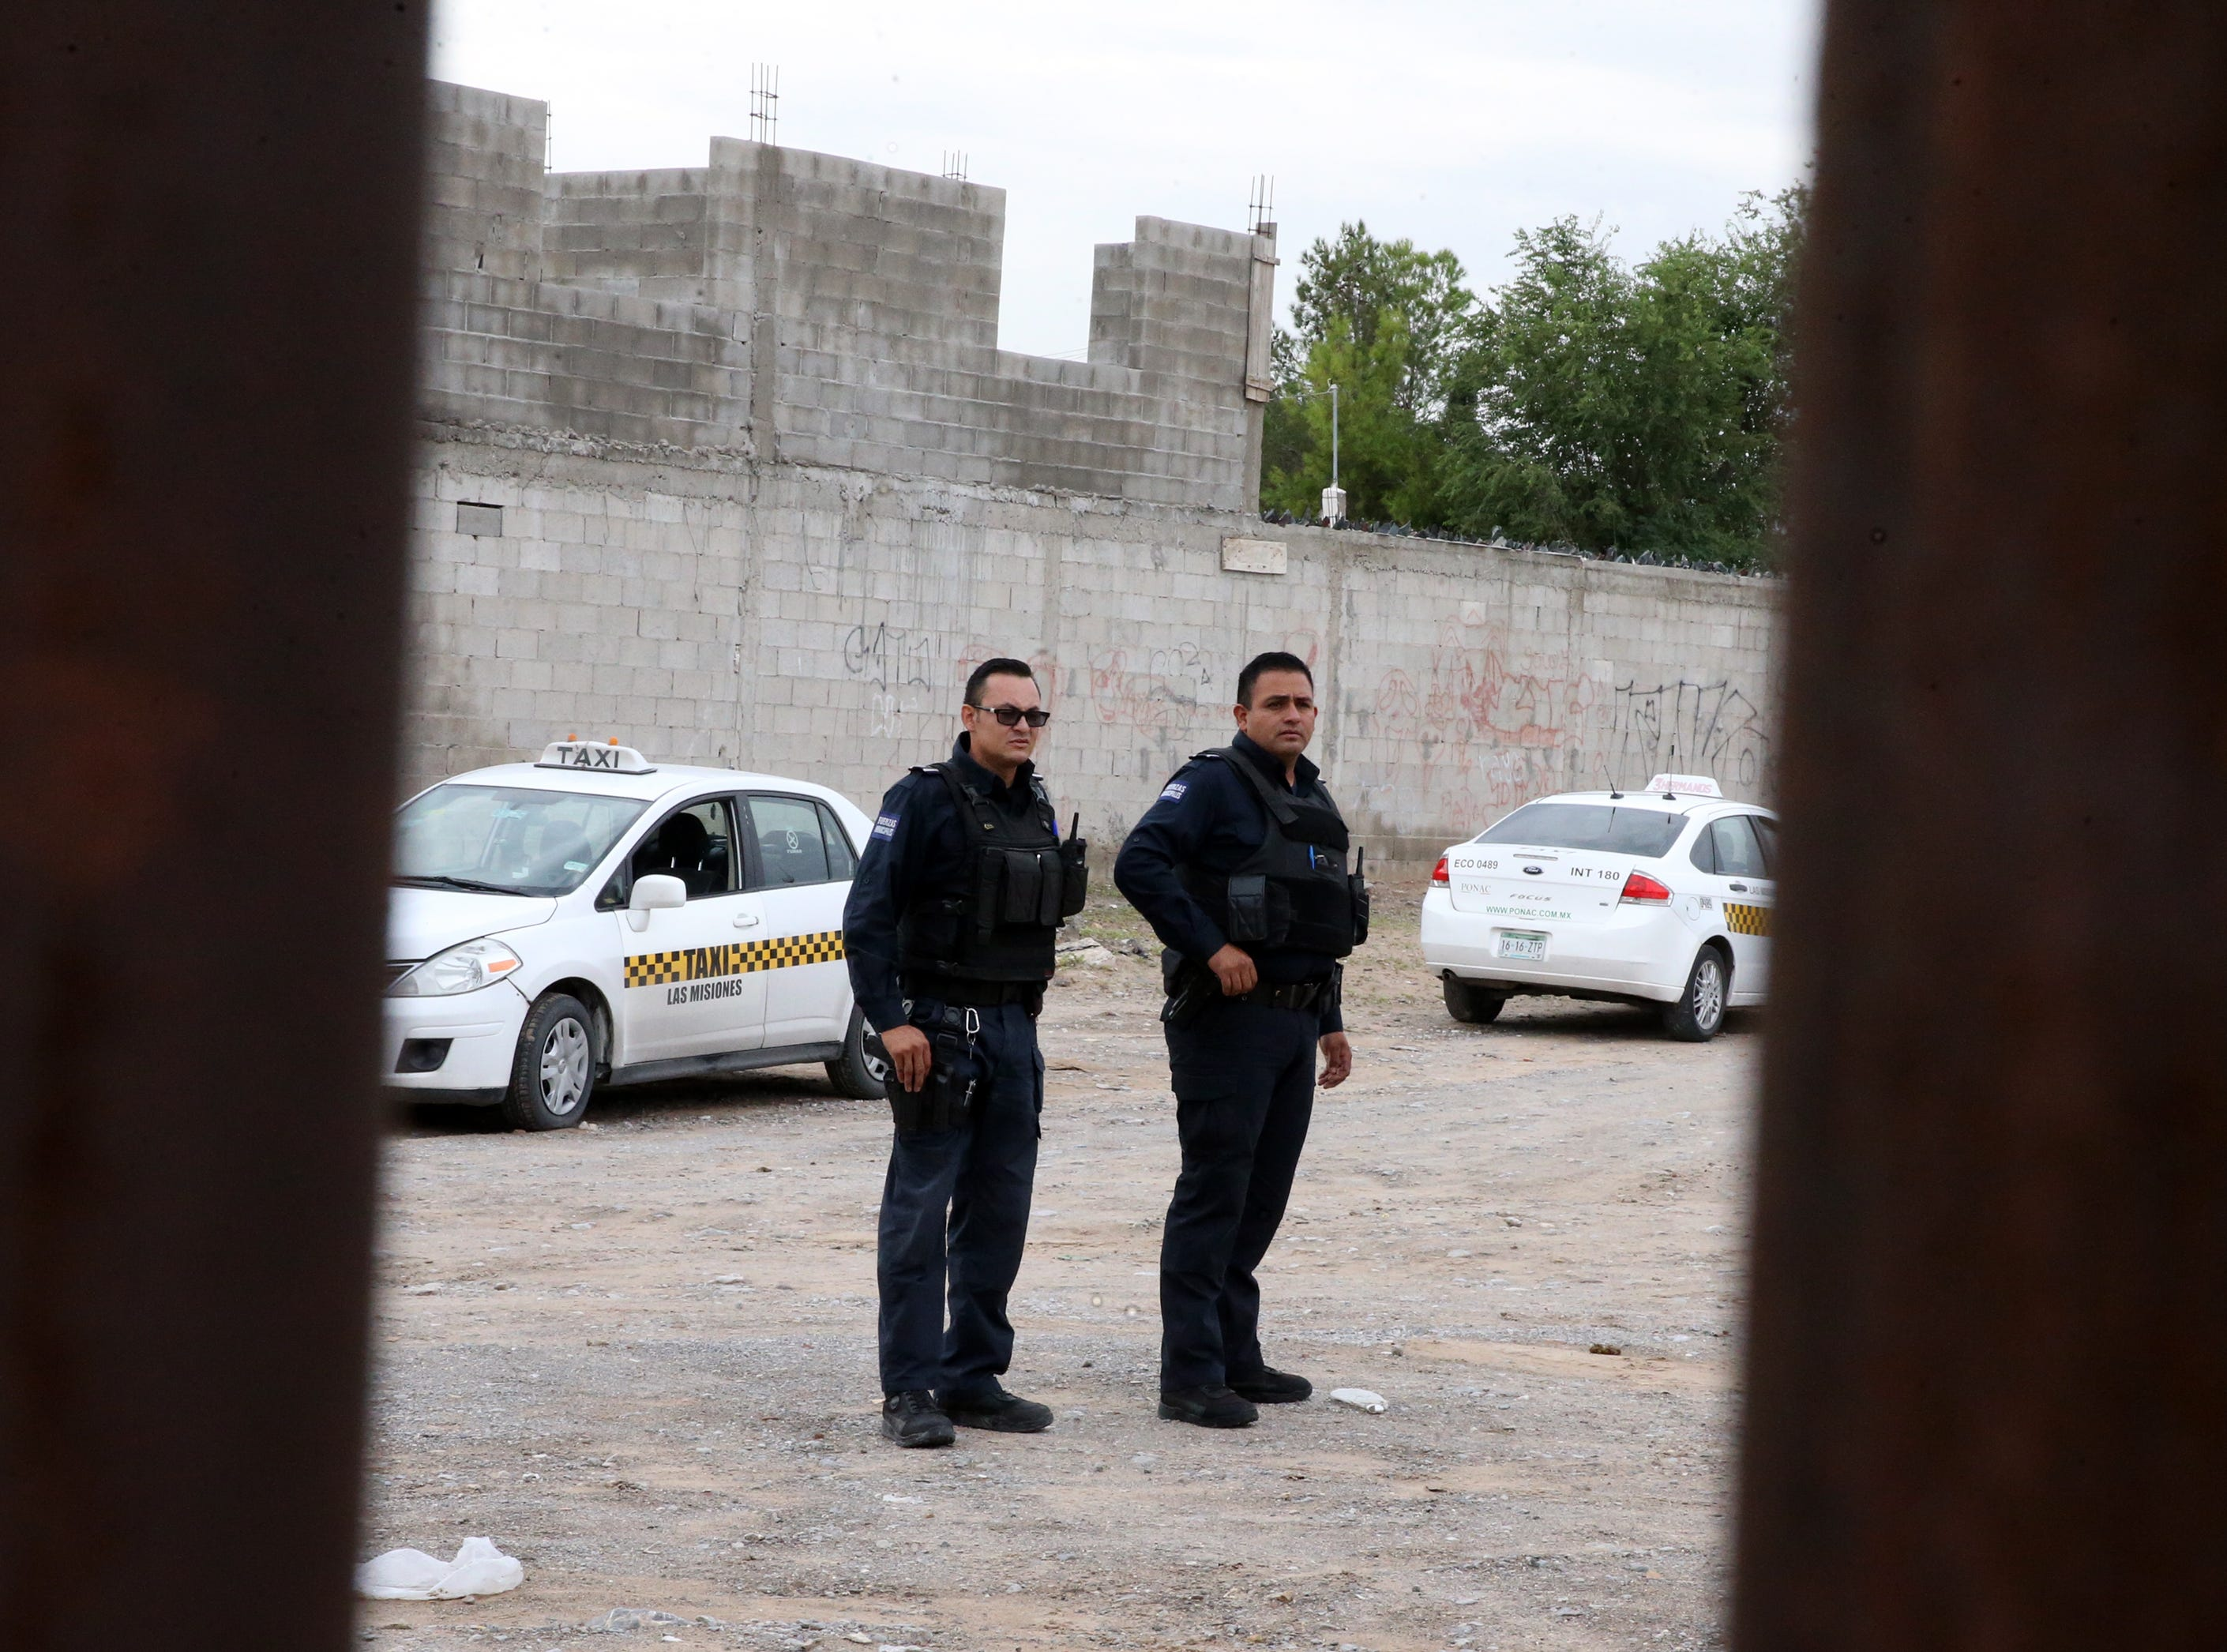 Juarez municipal police officers watch a gathering of people at the border fence in the Anapra area of Juarez Friday.